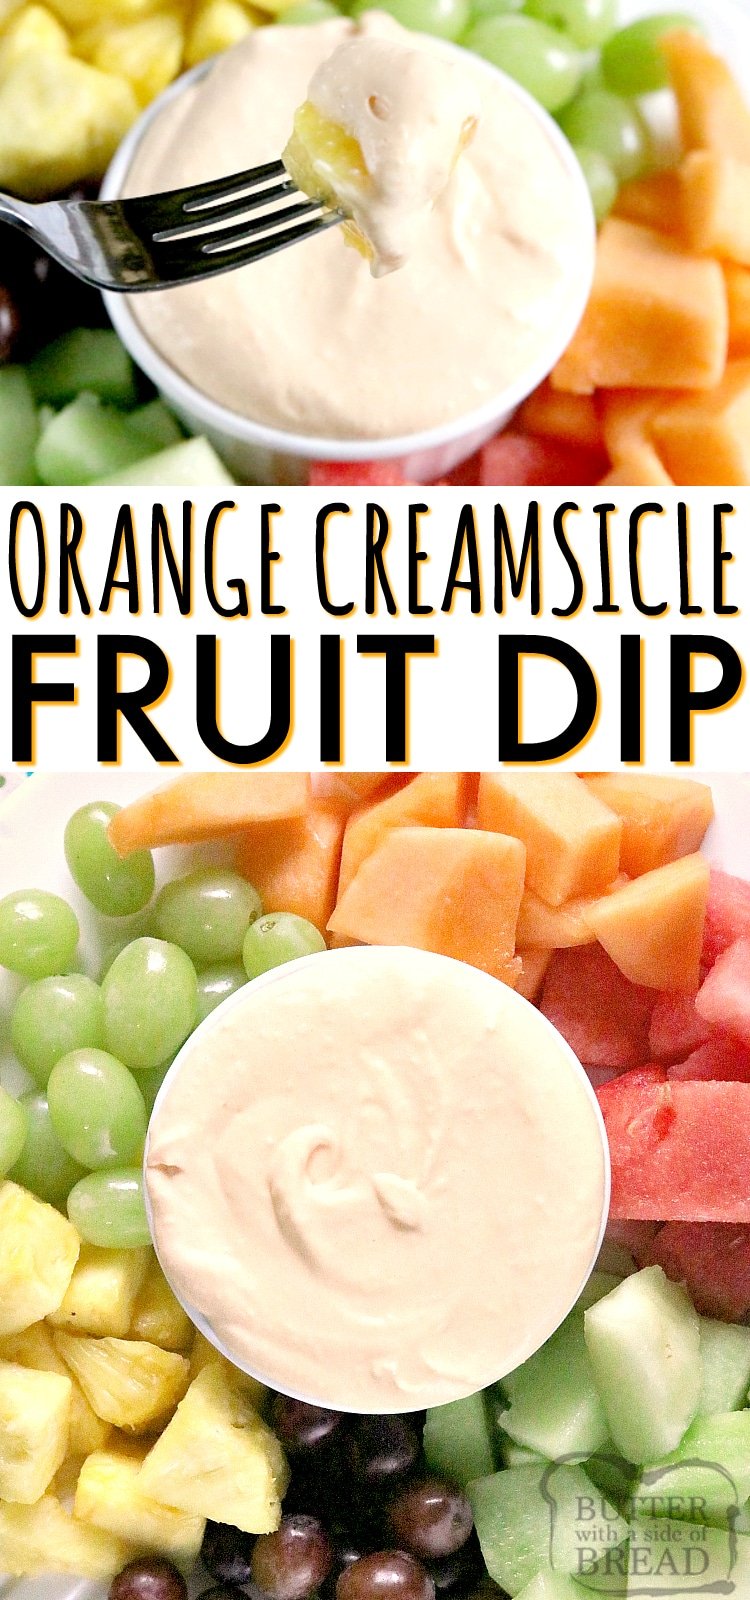 Orange Creamsicle Fruit Dip is sweet, delicious and bursting with orange flavor! This fruit dip recipe is very simple with only 3 ingredients, and it tastes amazing with all of your favorite fruits!